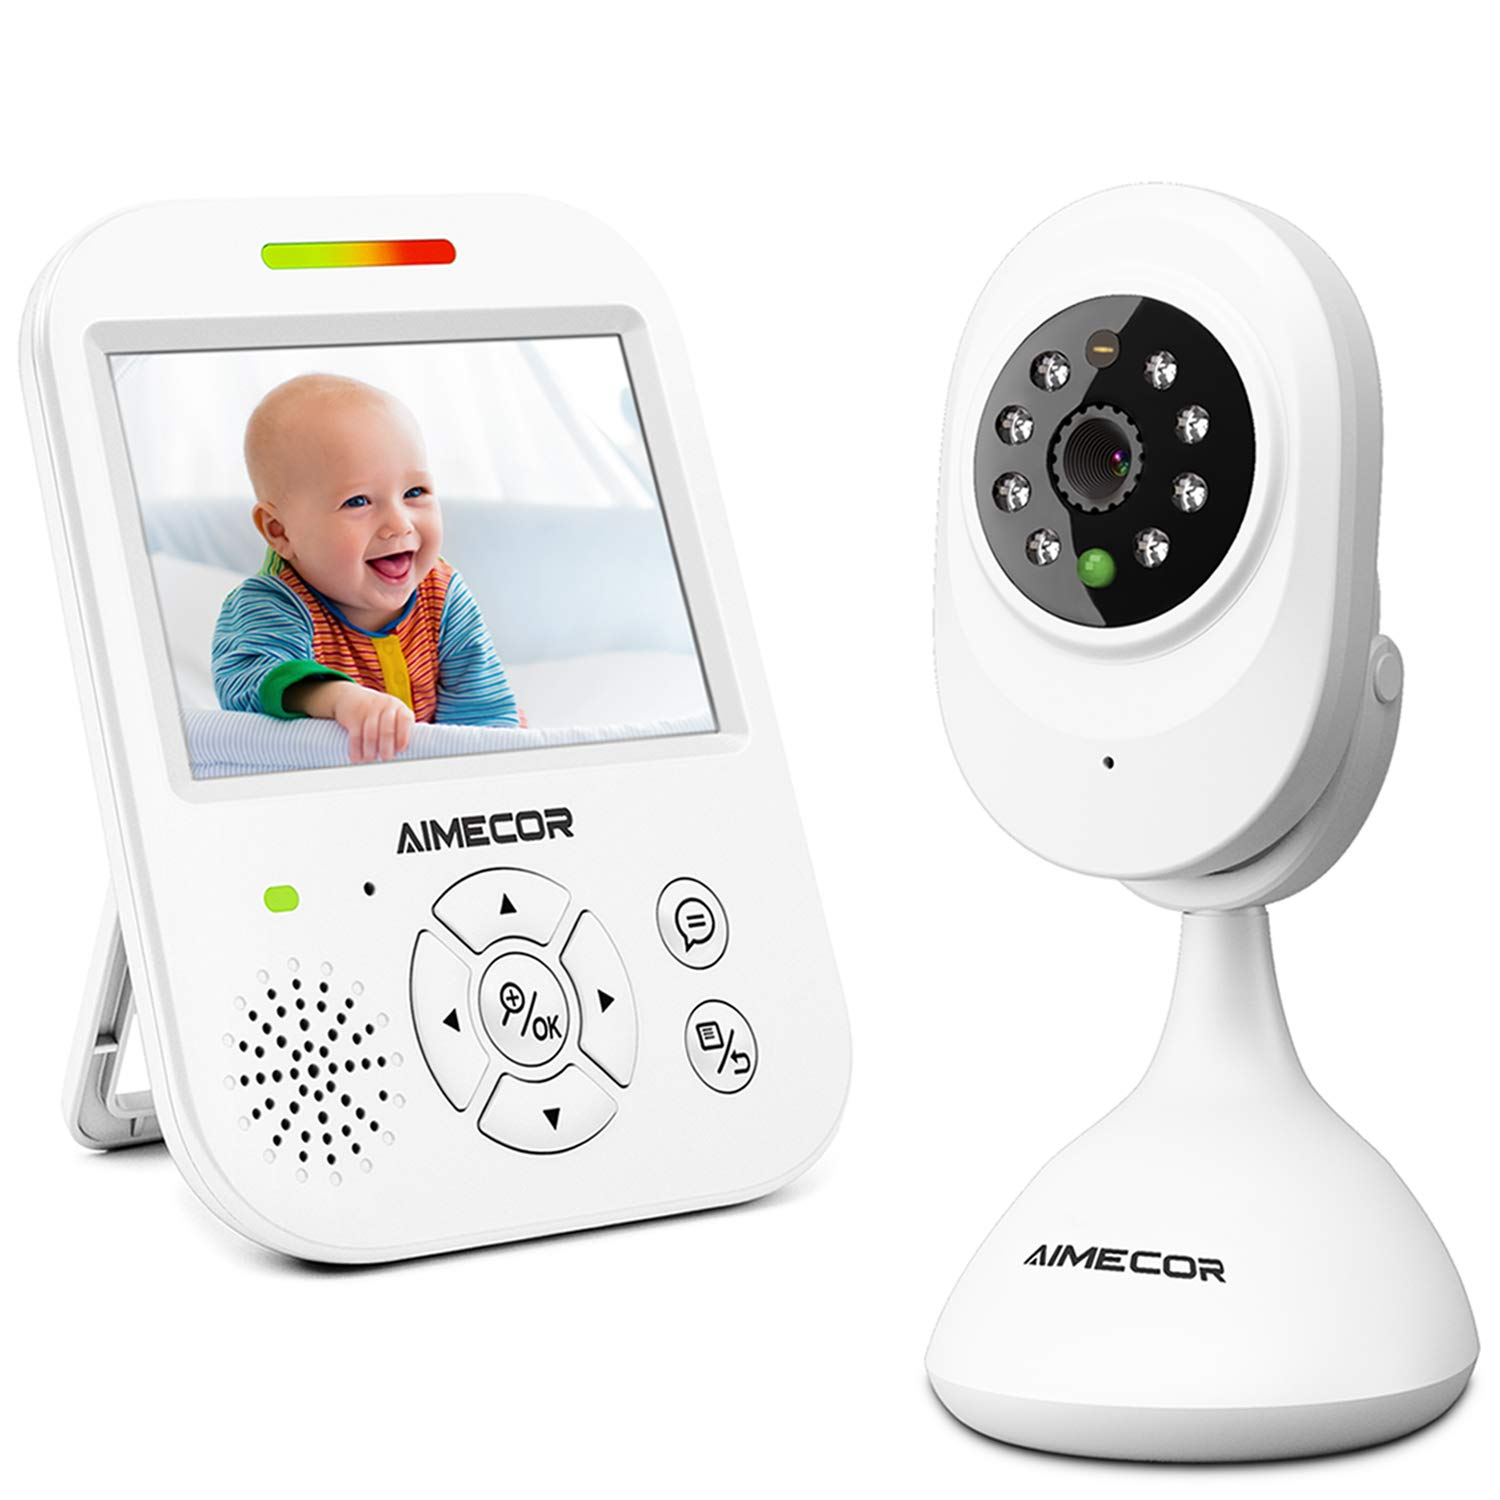 Video Baby Monitor with Camera - 3.5 inch IPS Display, HD Night Vision Camera, 960ft Transmission Range, Temperature Monitoring,Include Compatible Mount Shelf